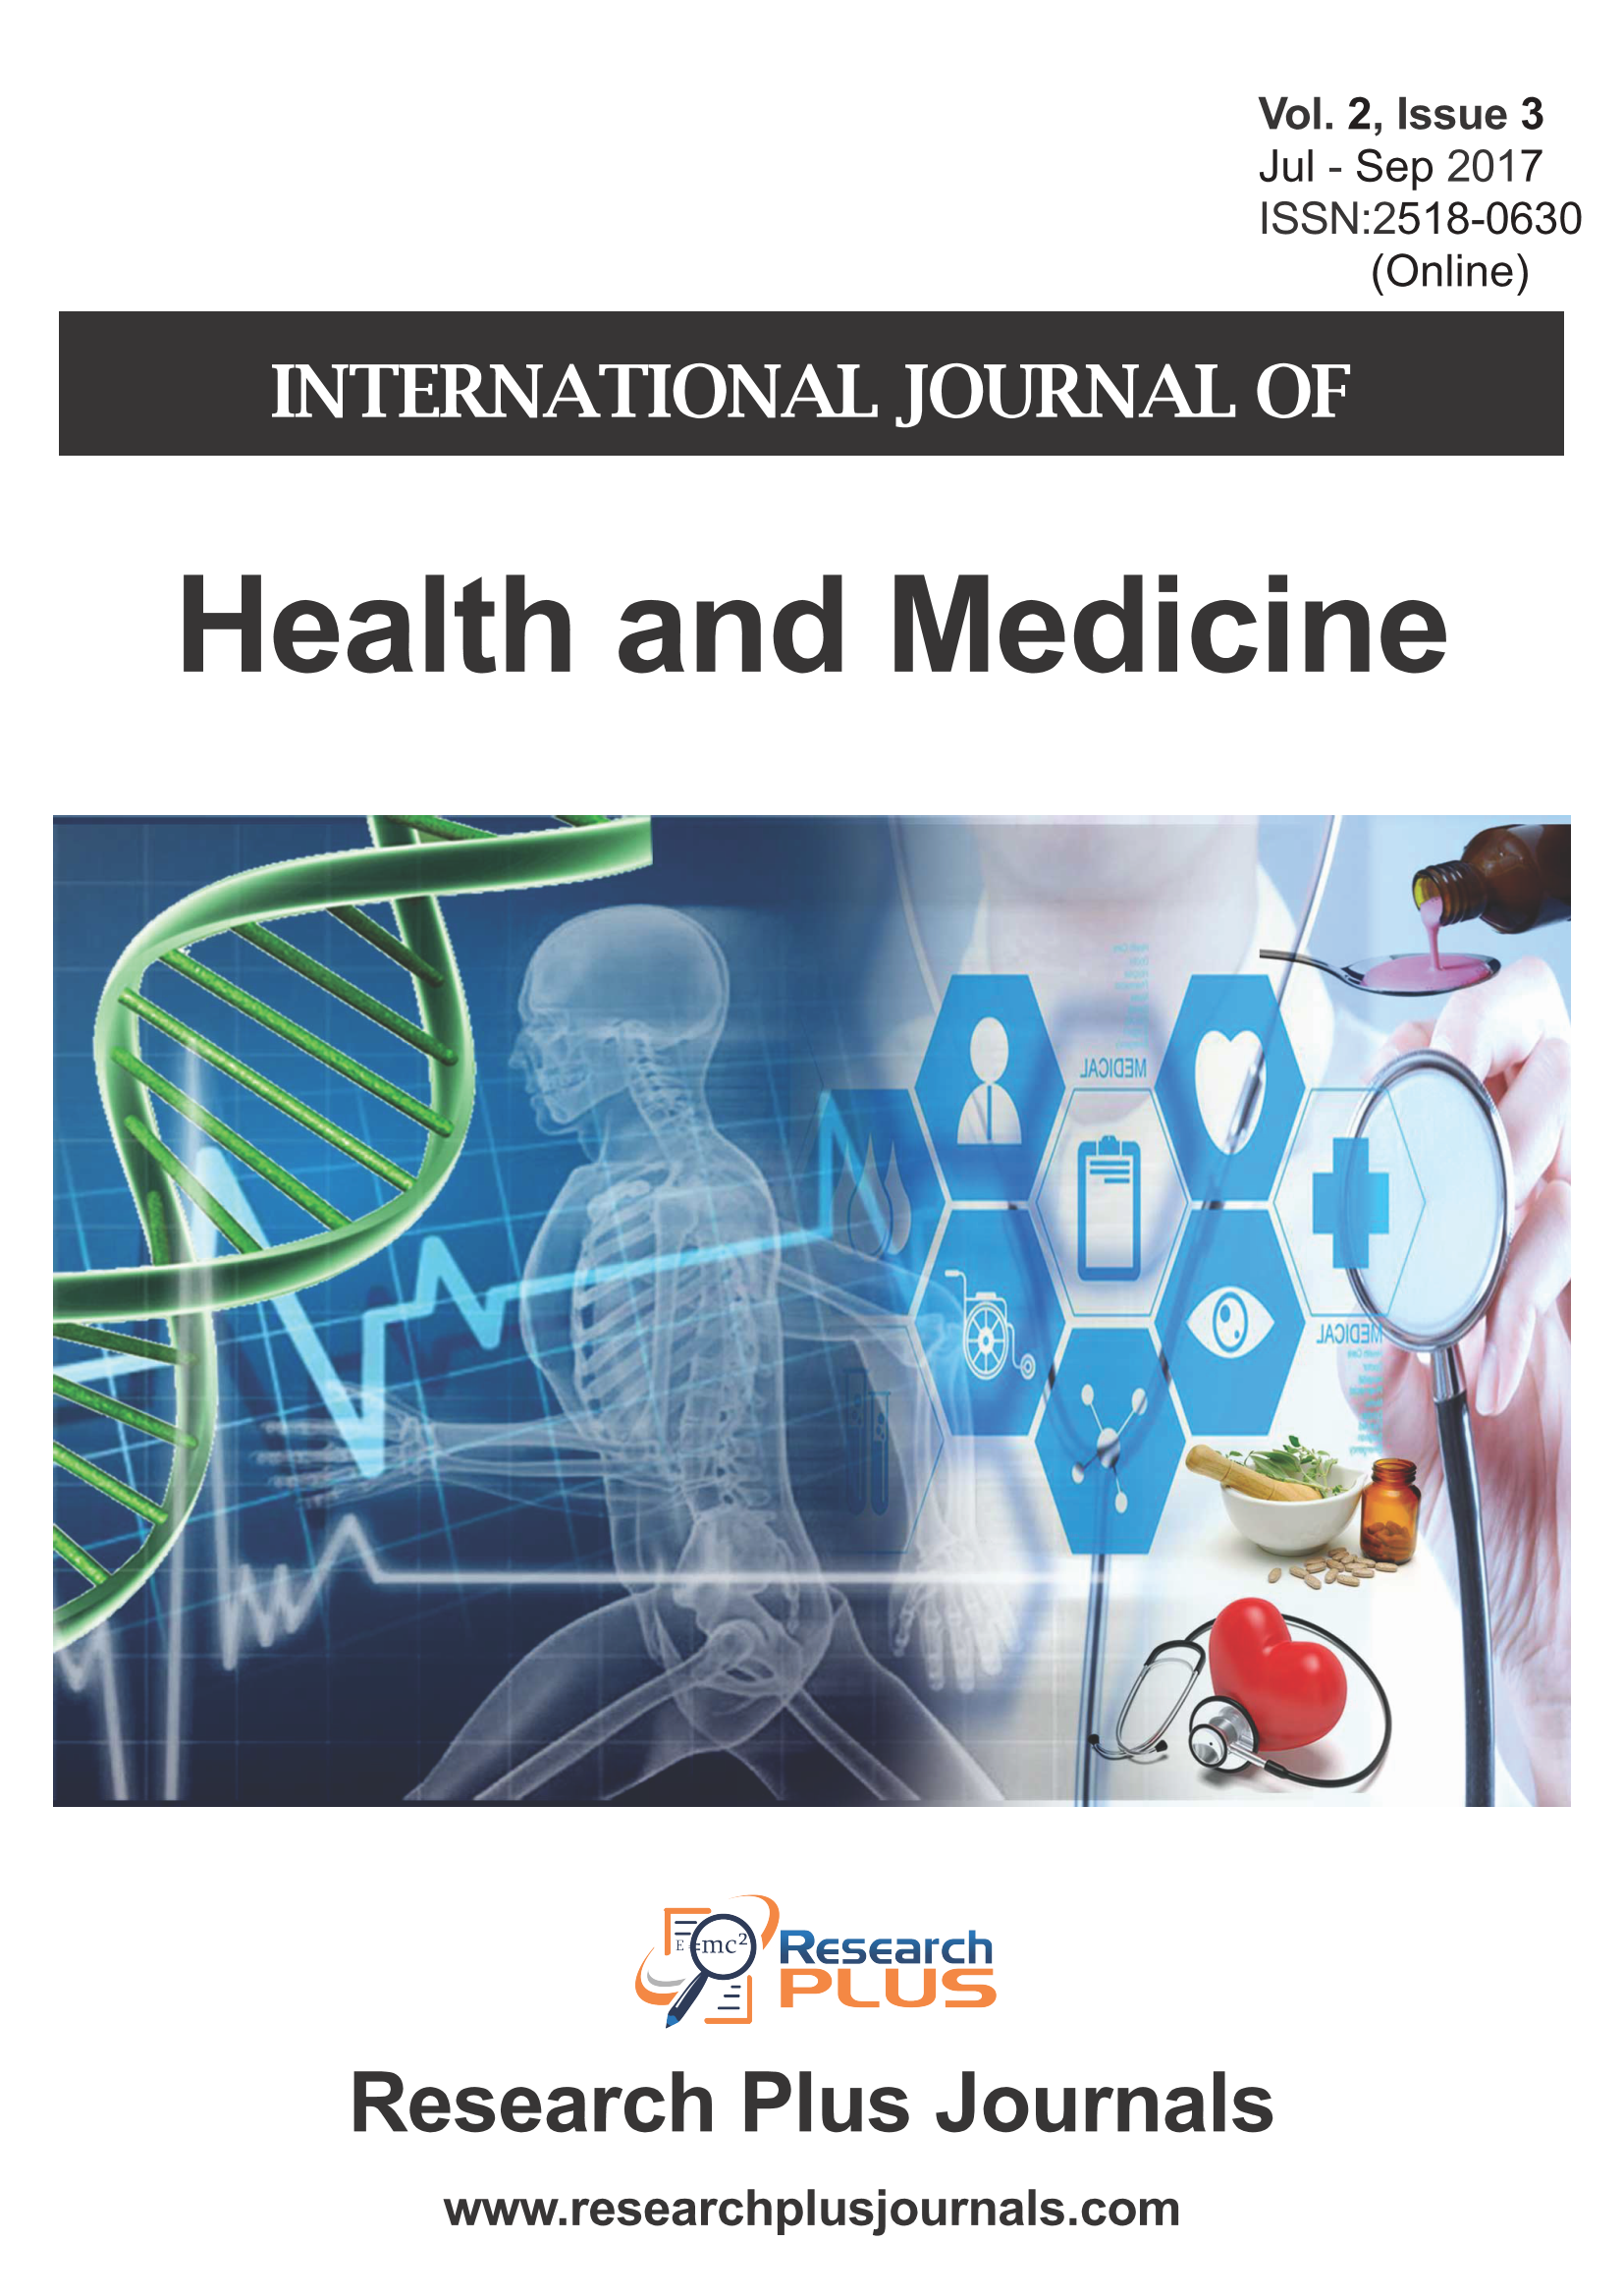 Volume 2, Issue 3, International Journal of Health and Medicine (IJHM) (Online ISSN: 2518-0630)